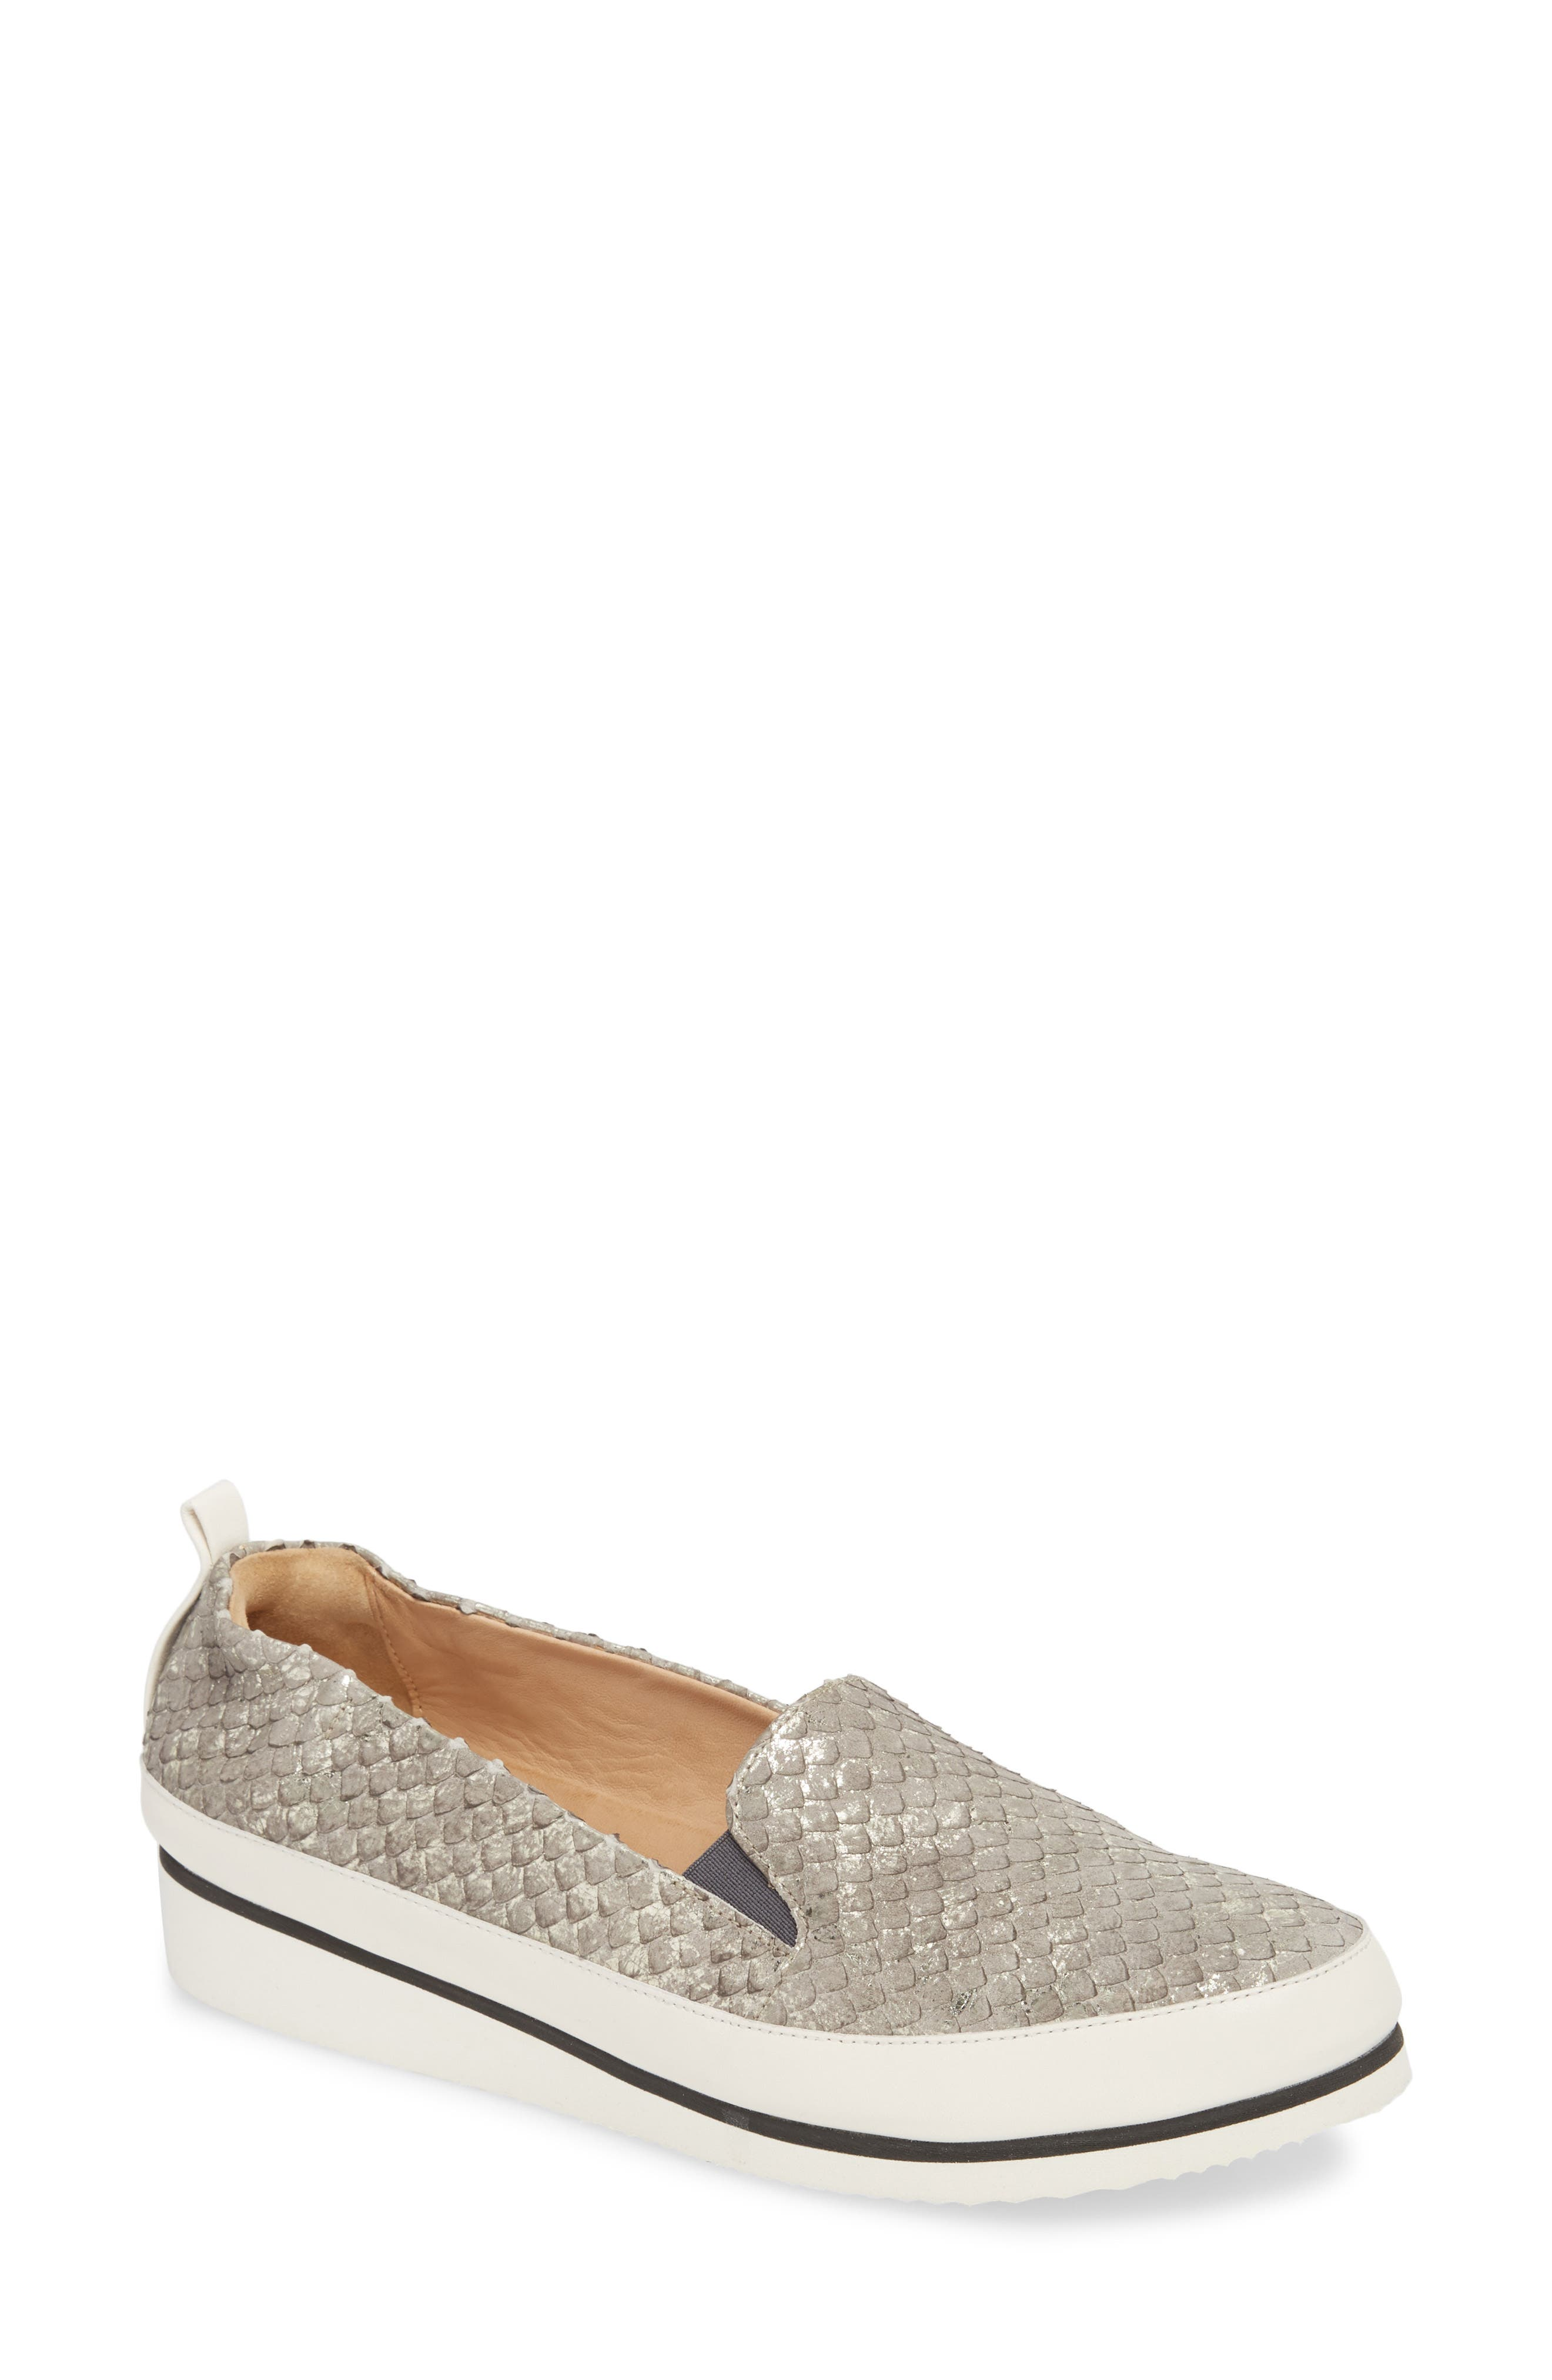 Nell Slip-On Sneaker,                             Main thumbnail 1, color,